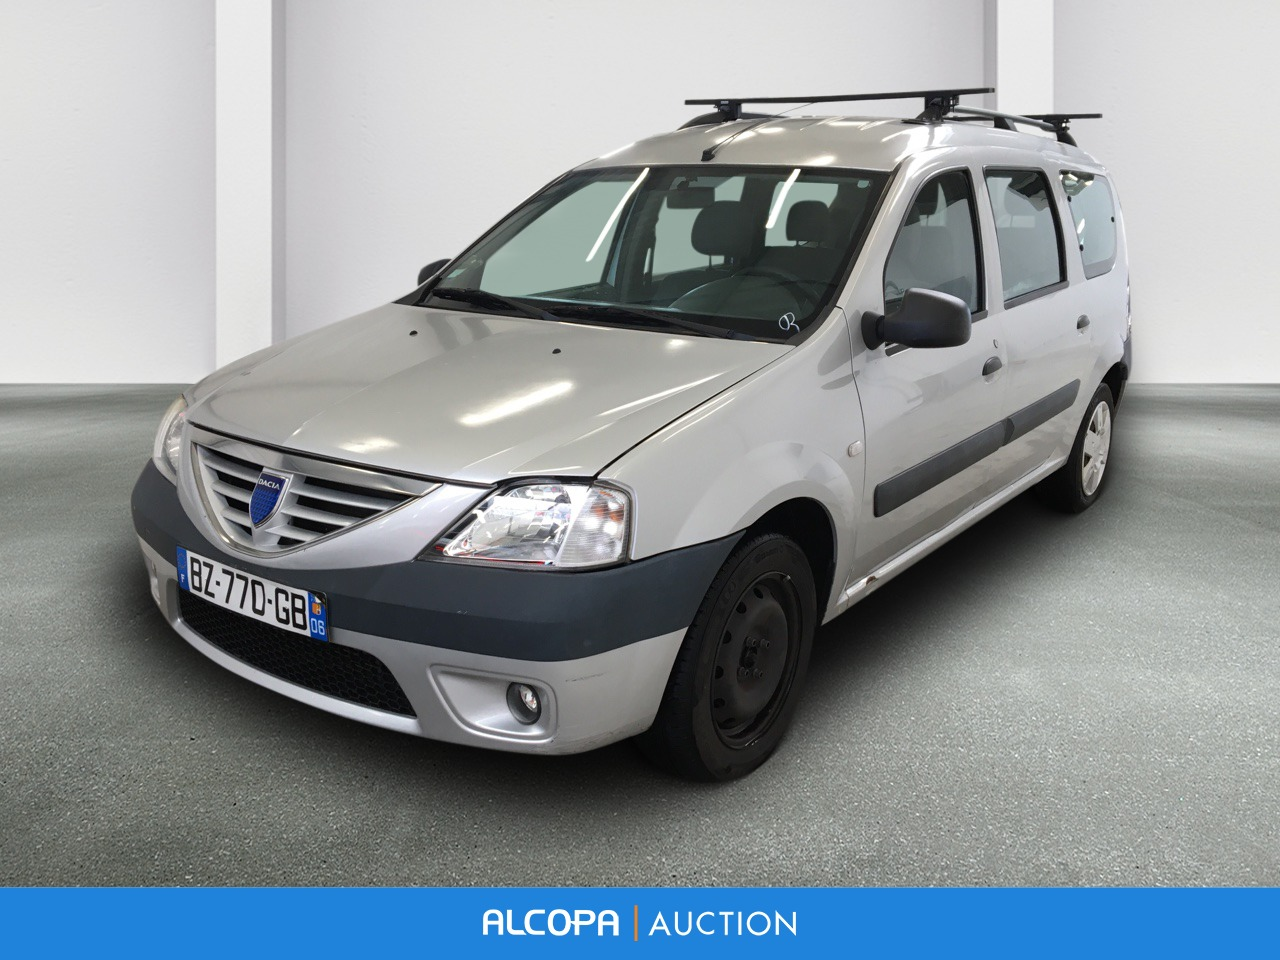 dacia logan mcv logan mcv 1 5 dci 70 7 places laureate alcopa auction